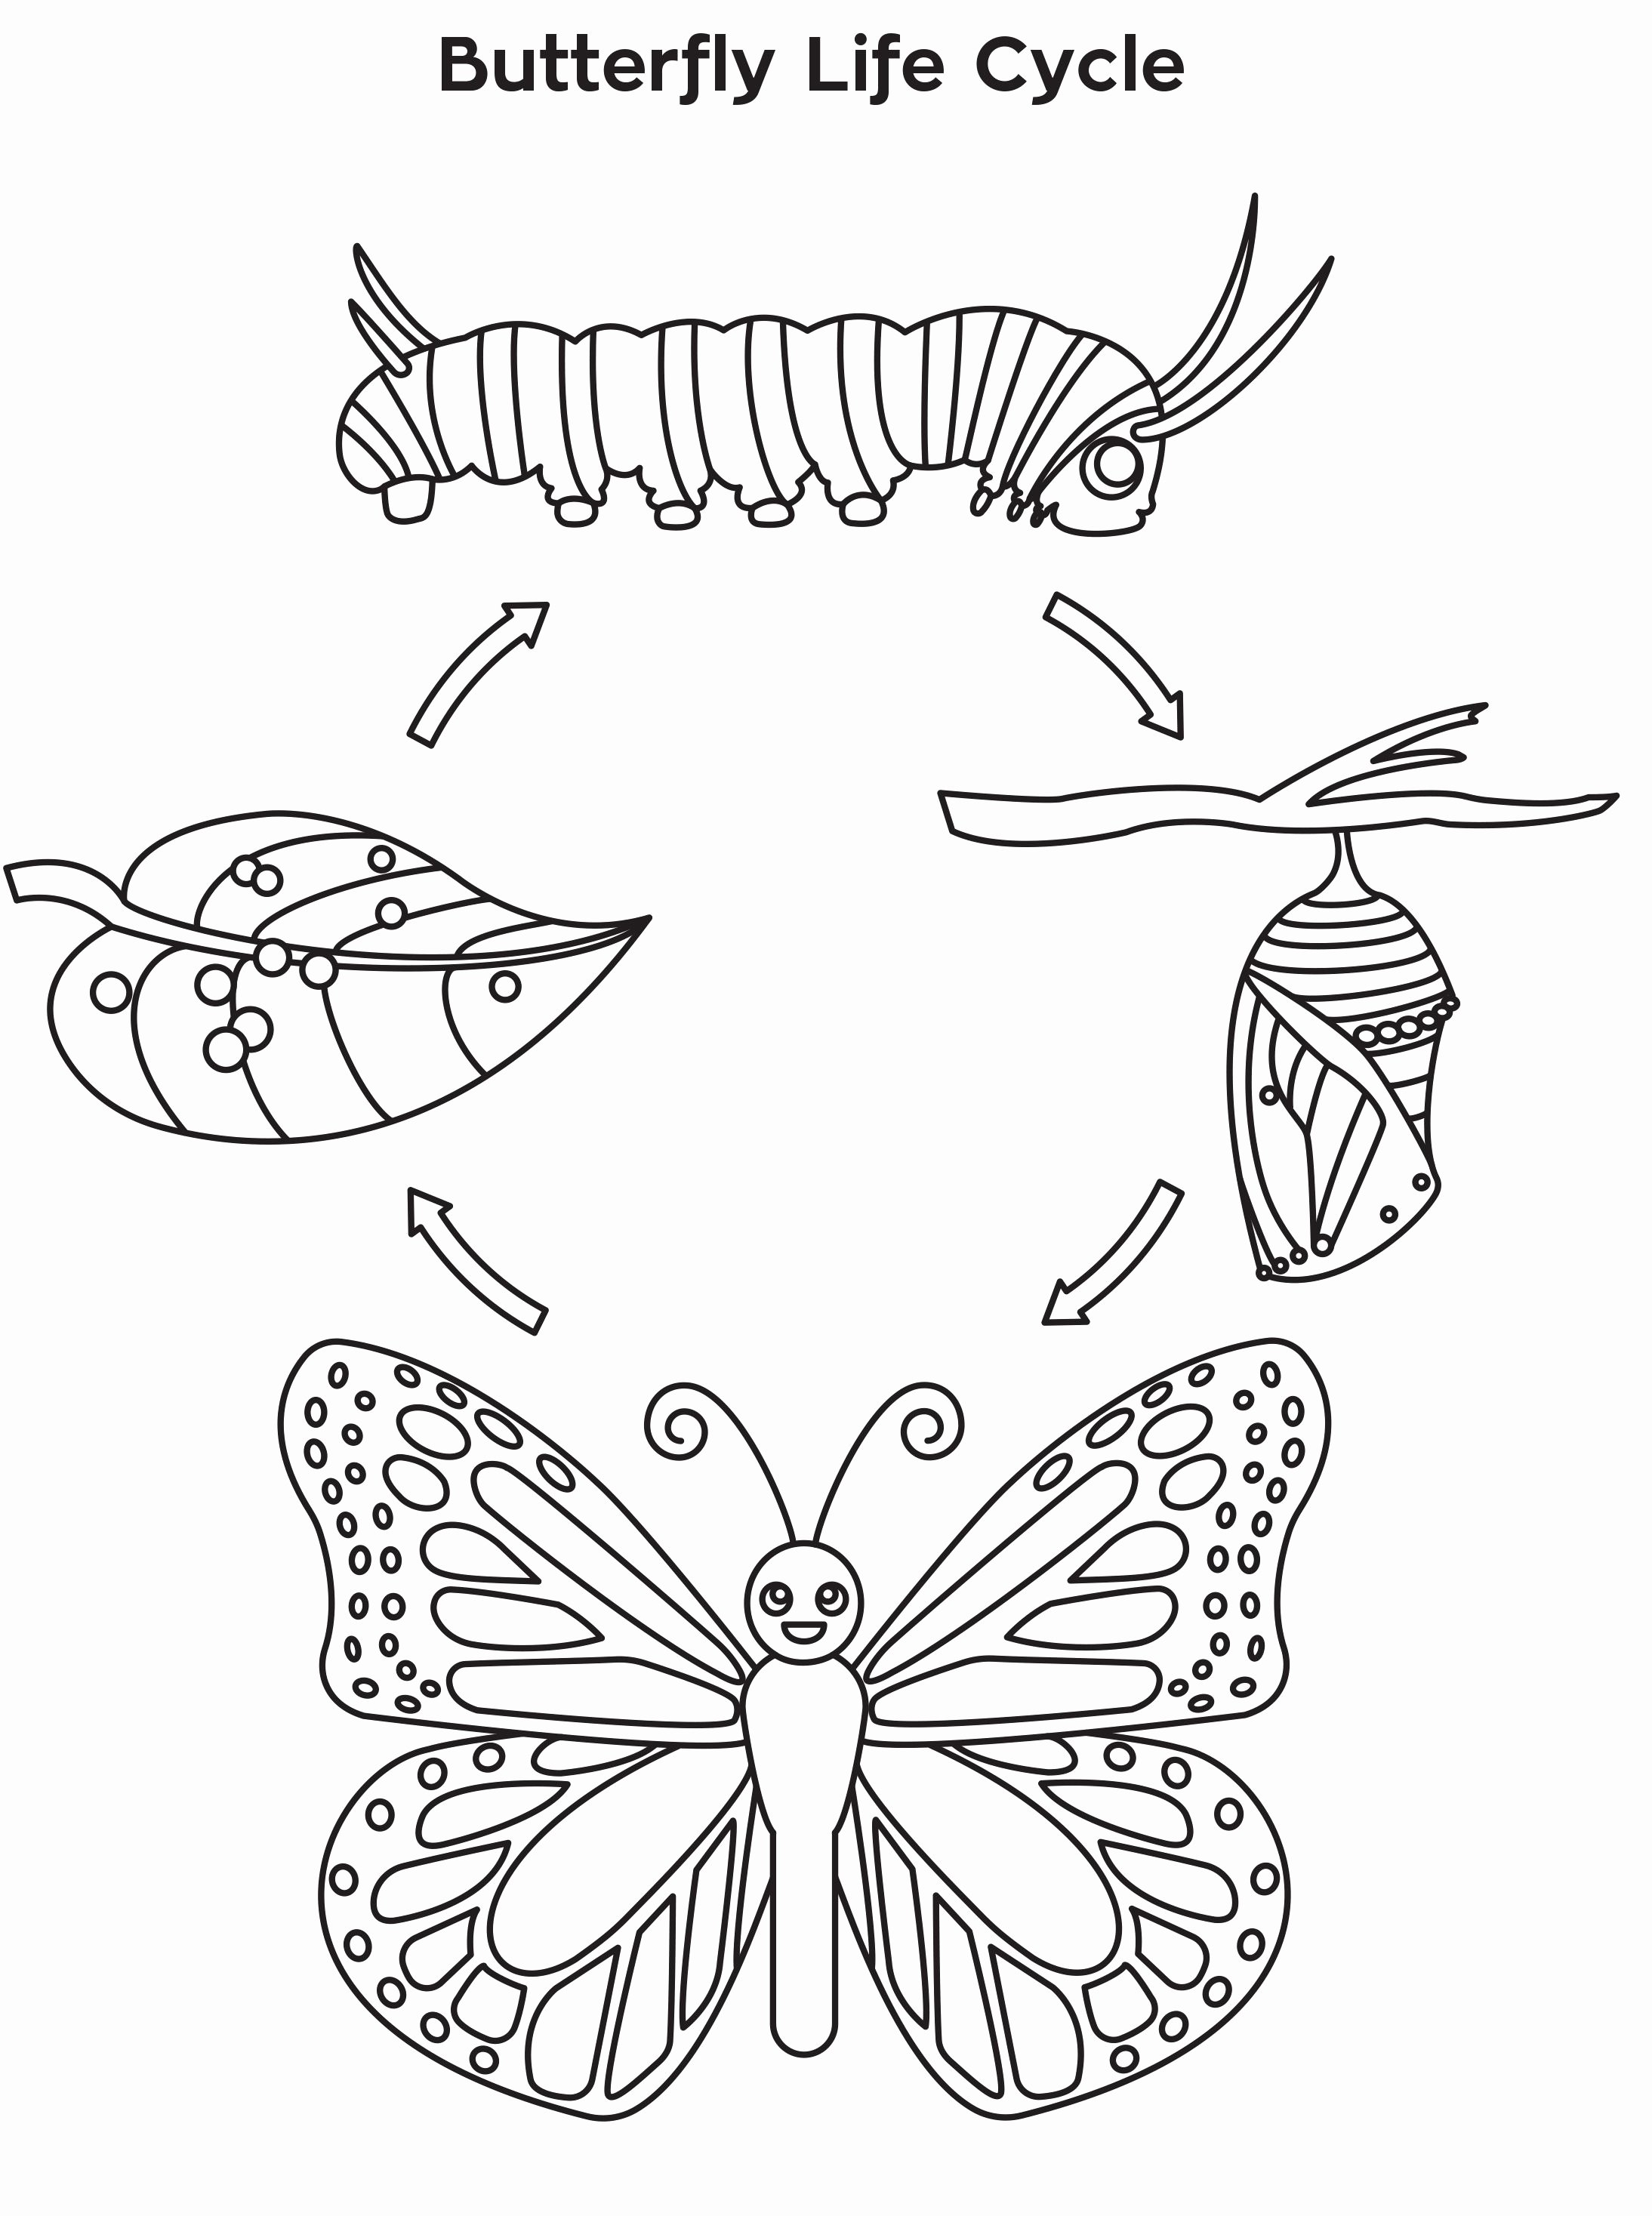 Butterfly Life Cycle Worksheet Luxury Meeting 6 butterfly Life Cycle Coloring Sheet